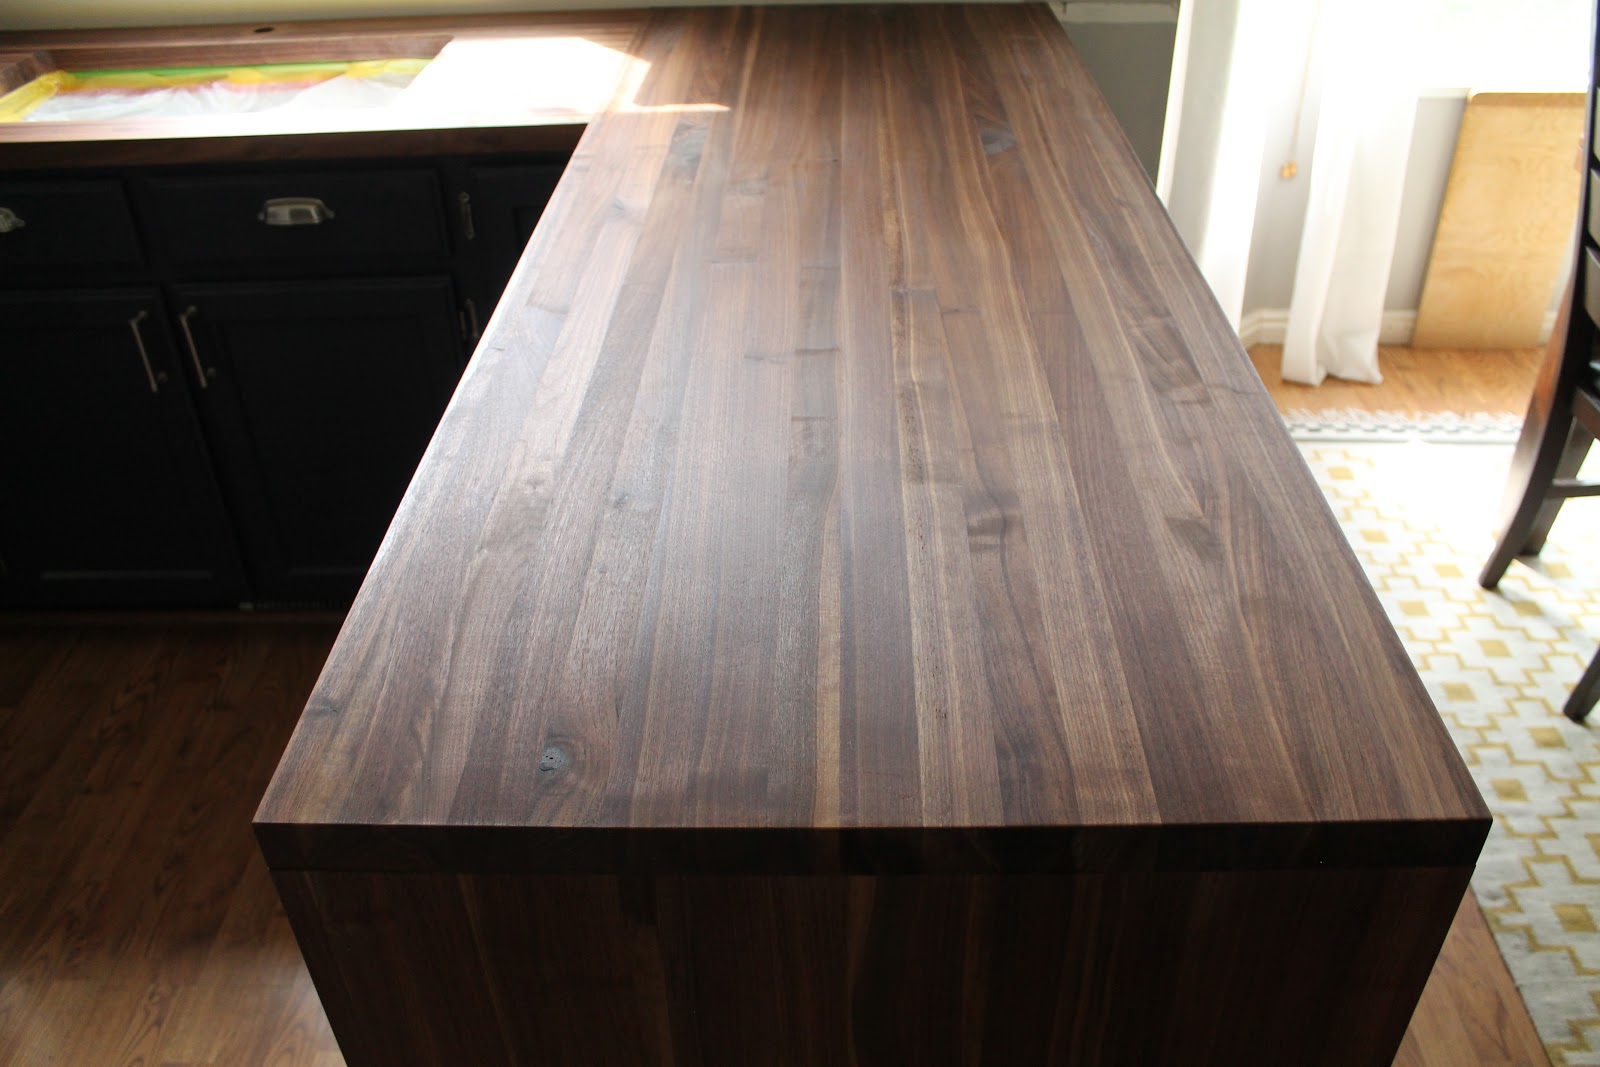 & Our Walnut Countertops-Sanded Sealed and Finished! - Chris Loves Julia